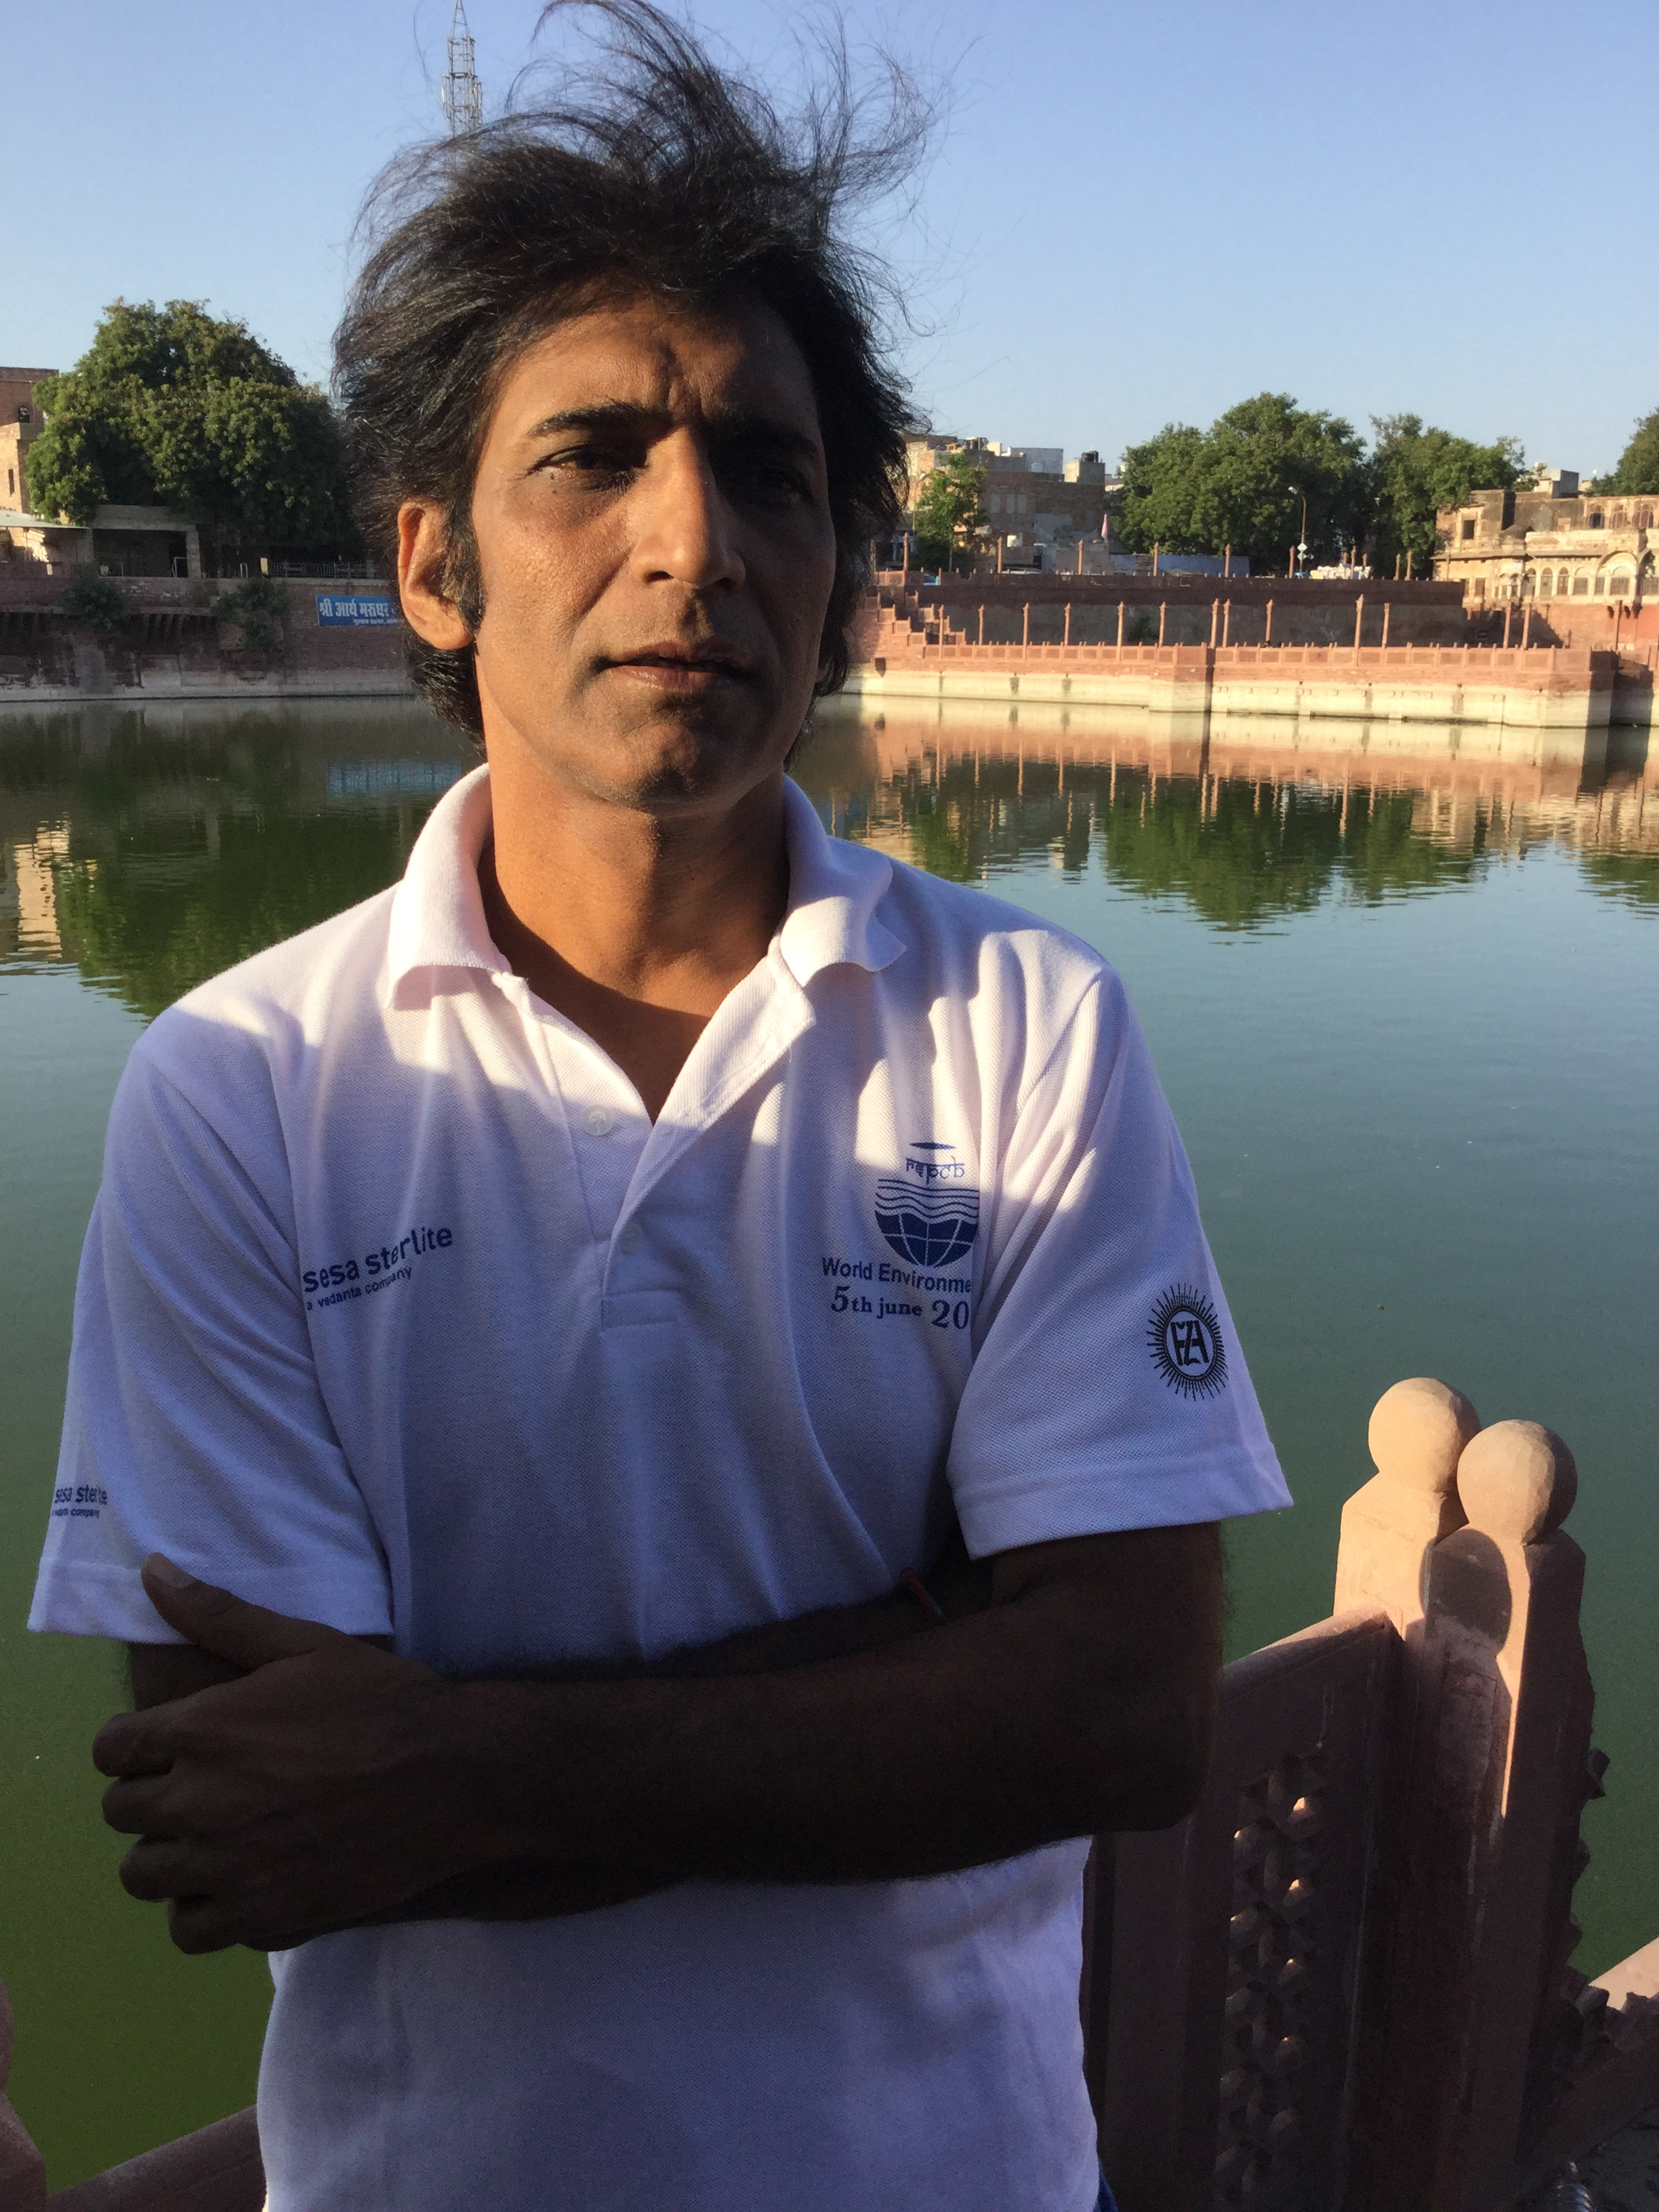 """Joshi is a self-motivated eco-warrior who has taken upon himself the responsibility of reviving the city's water heritage. """"Although abandoned, the wisdom which went into designing these wells is still at work, proven by the sparkling water which accumulates there. If they can be cleaned and restored, water from these structures can reduce the city's dependence on the canal,"""" he says"""